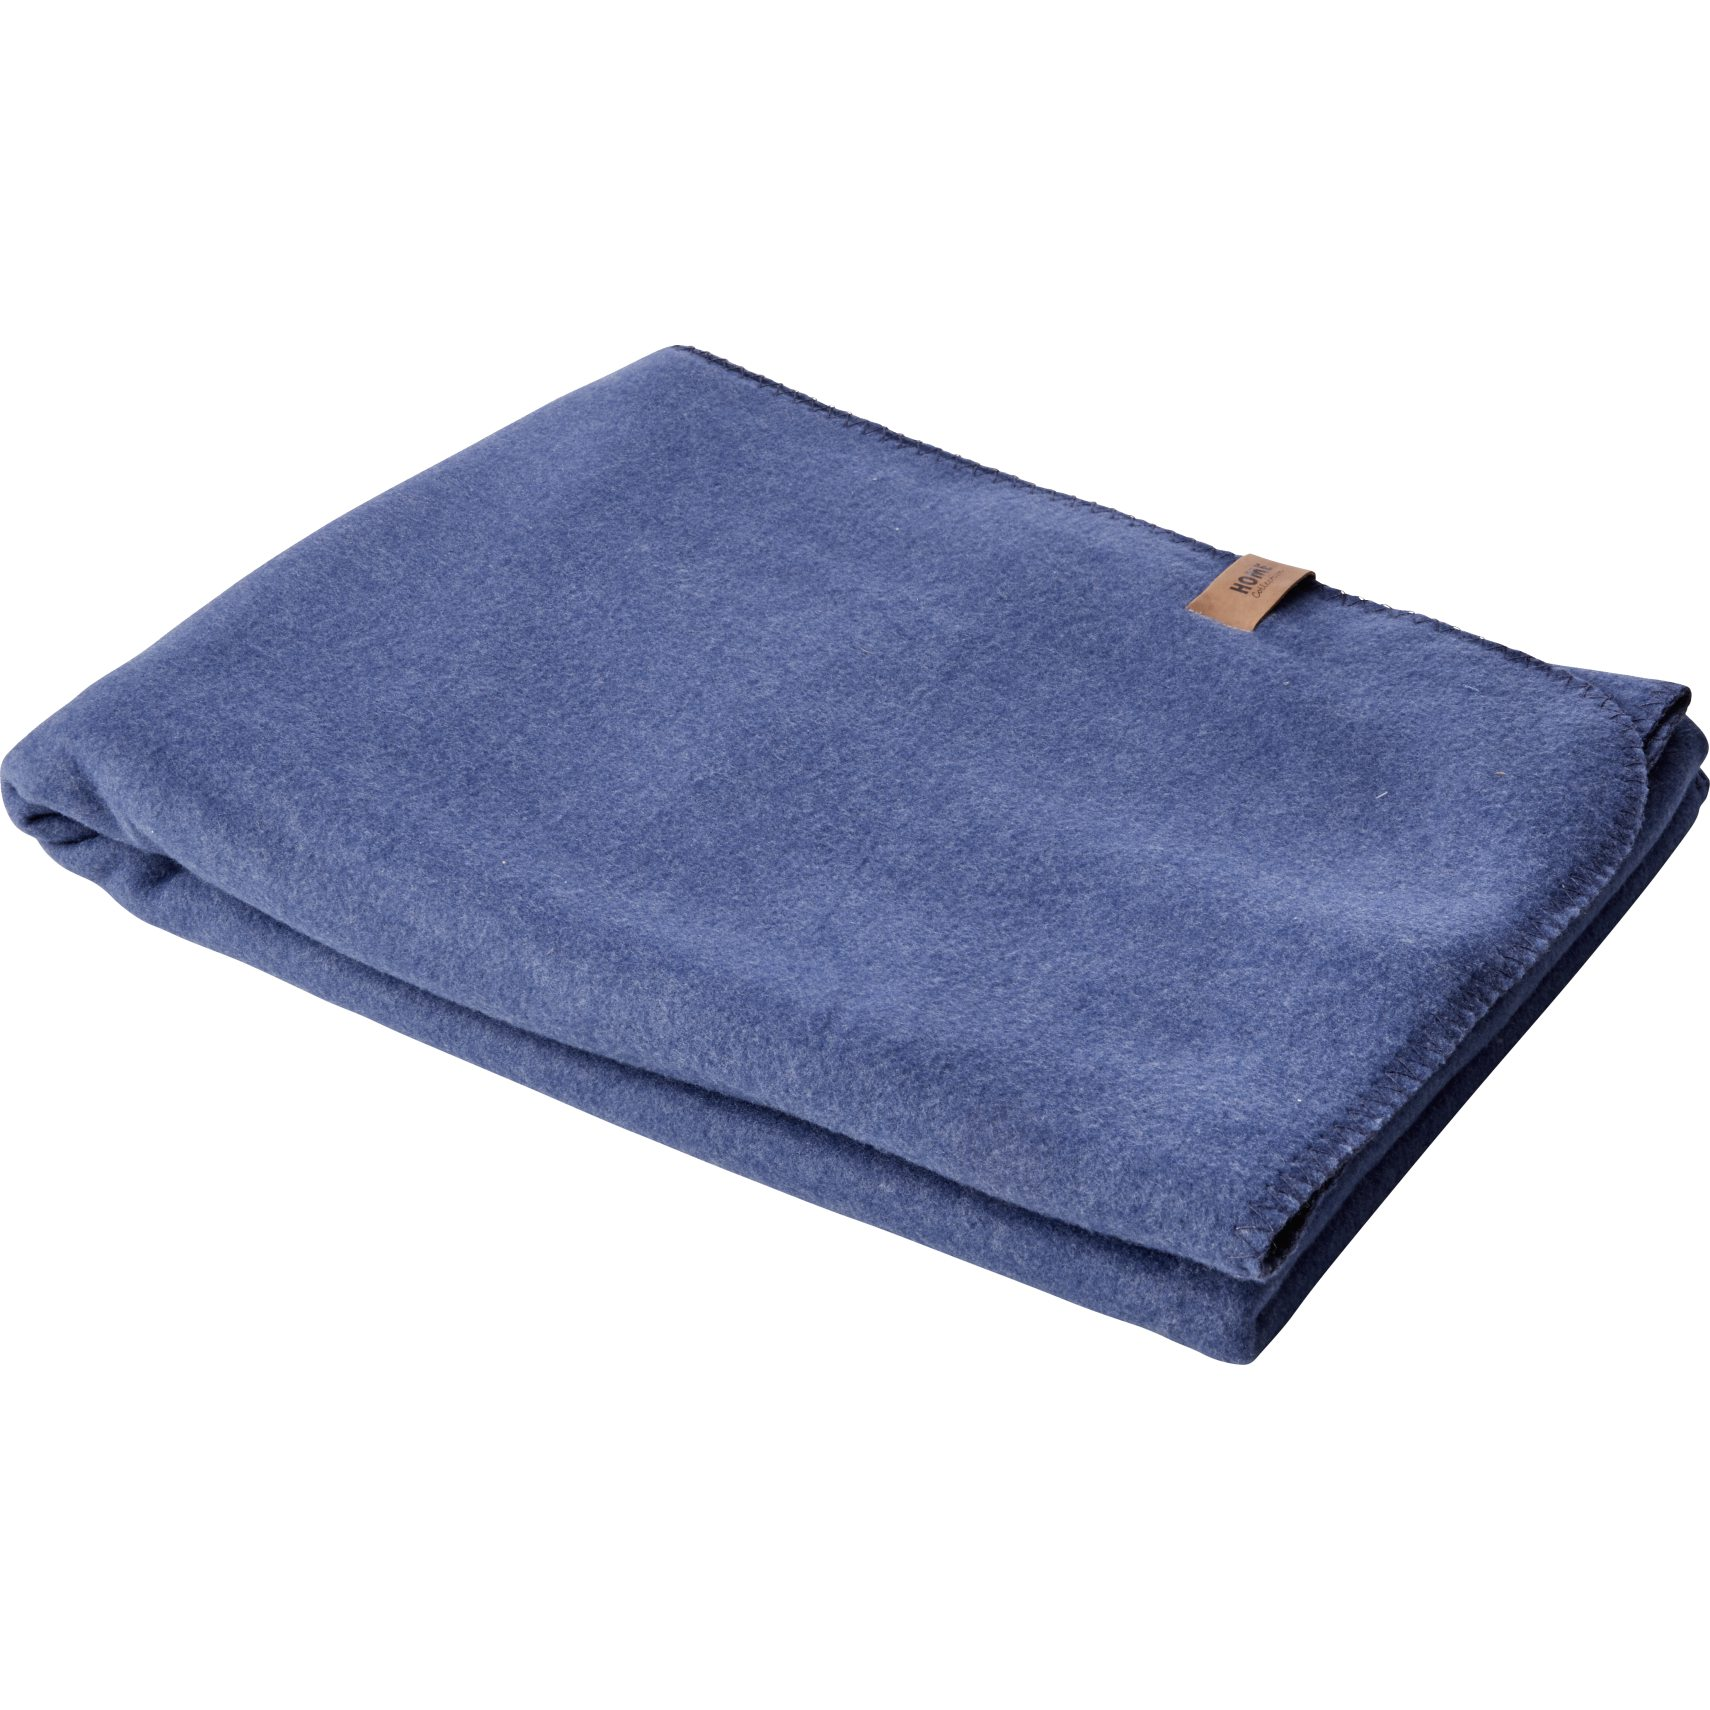 Fleece Pläd - Blue indigo polyester